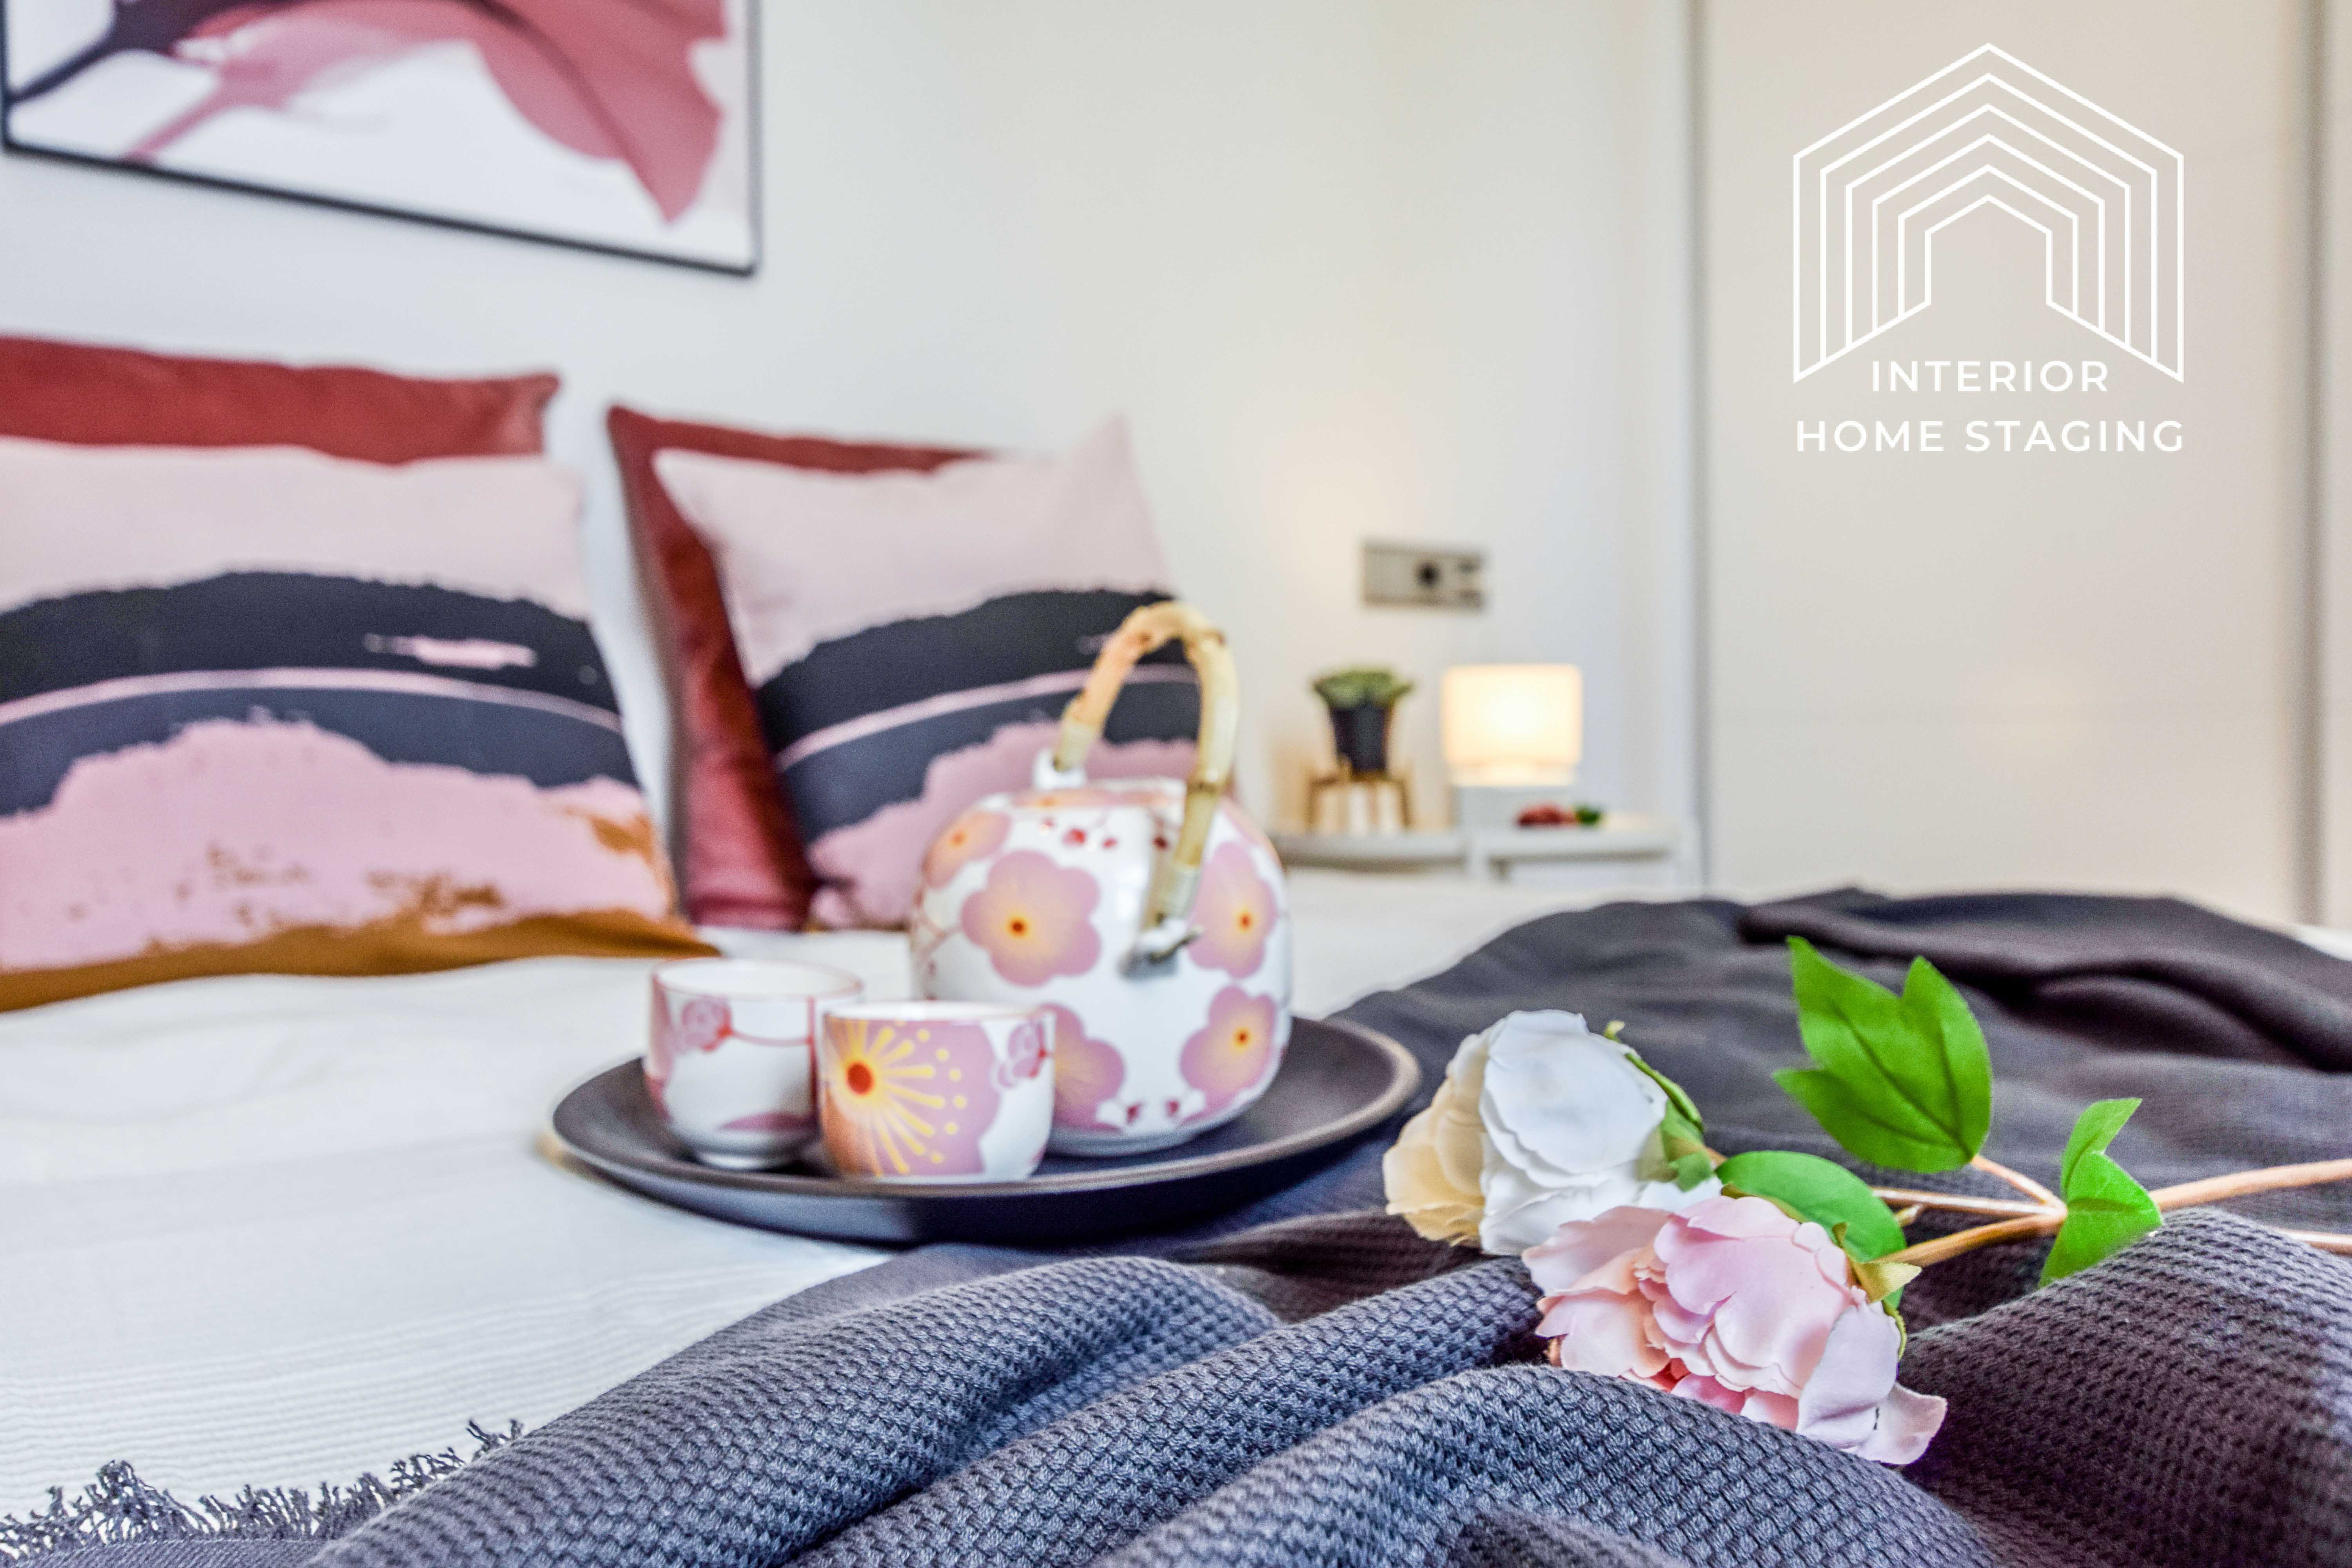 Interior Home Staging detalle cama principal